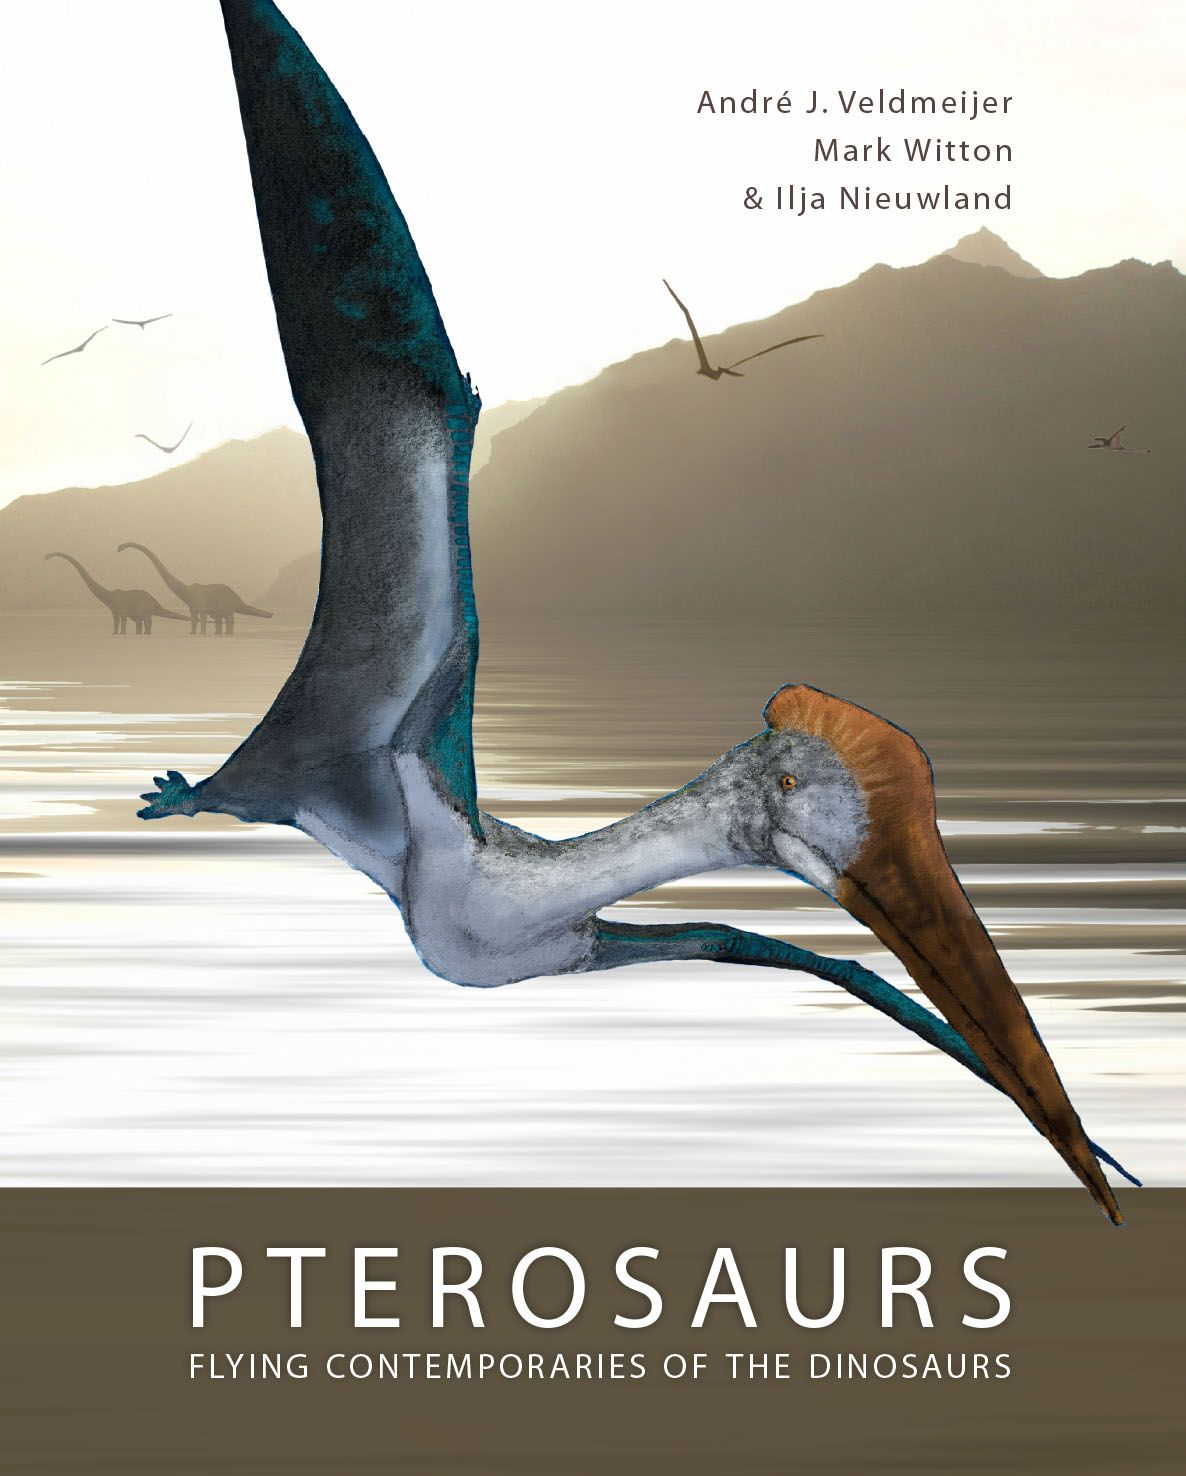 Pterosaurs: Flying contemporaries of the Dinosaurs by André J. Veldmeijer, Mark Witton & Ilja Nieuwland